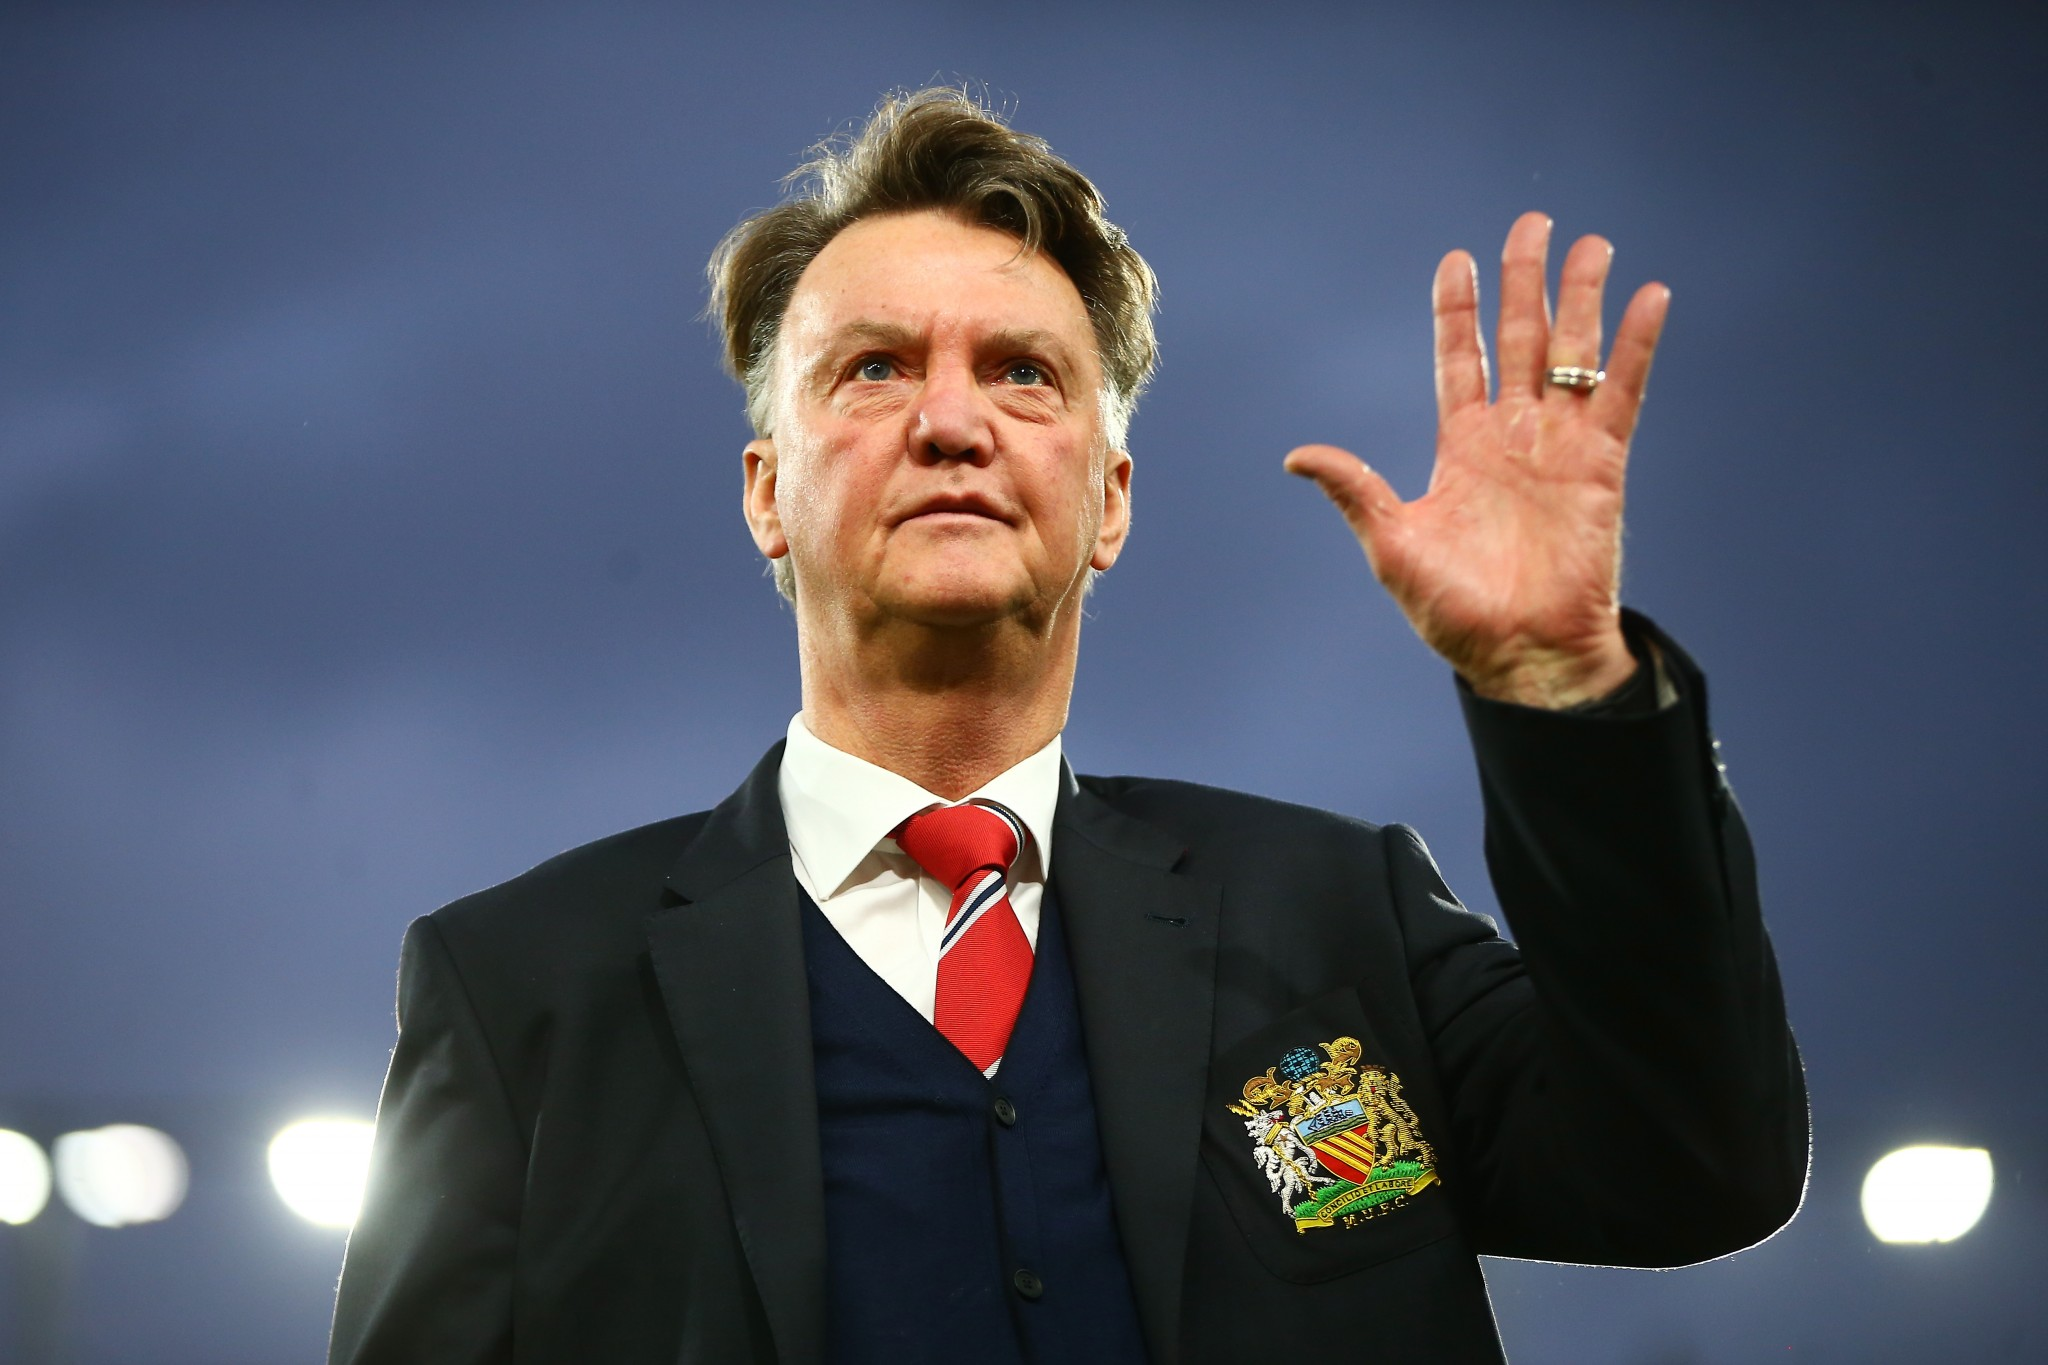 Louis van Gaal after Manchester United's game with Bournemouth